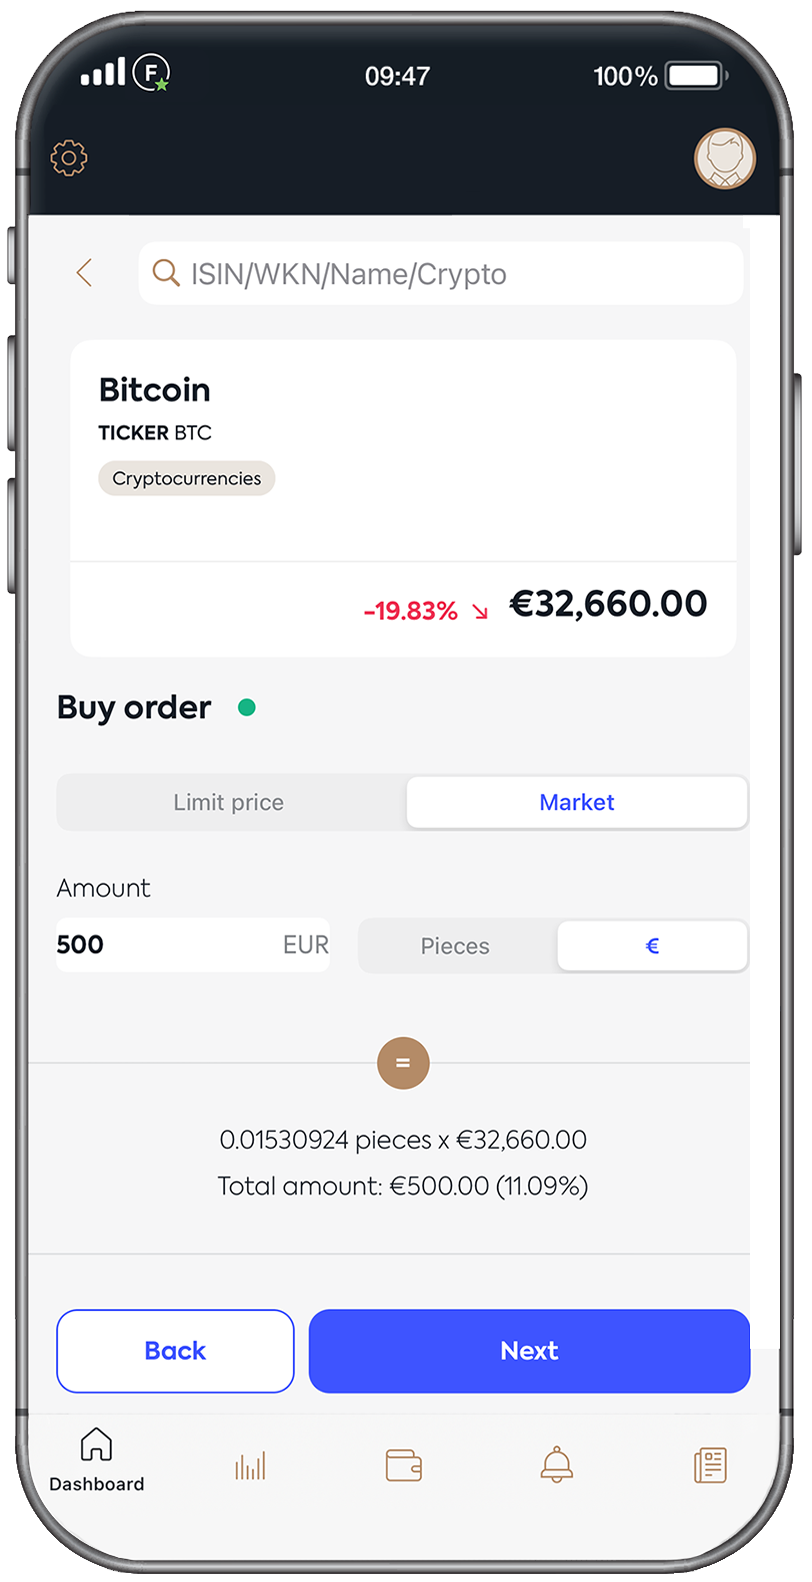 Trade cryptocurrencies seriously